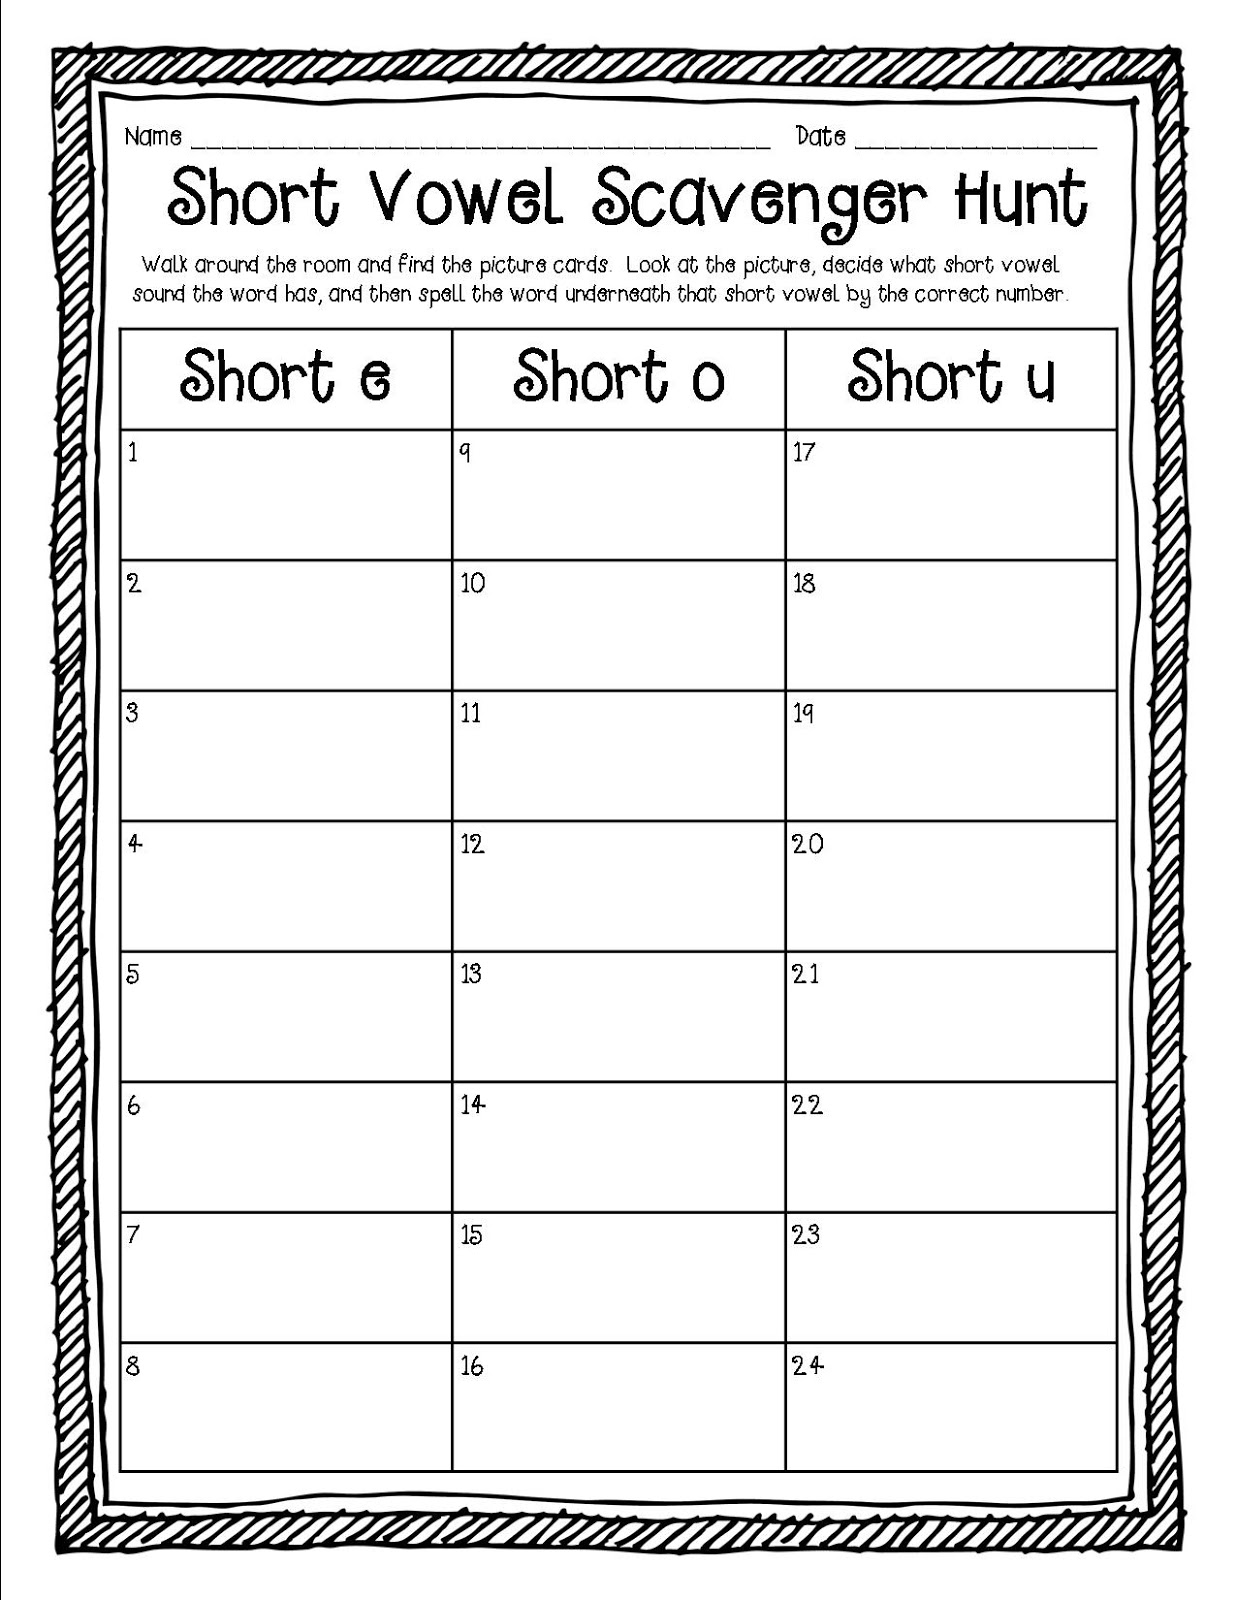 Schwa Pronunciation Worksheet